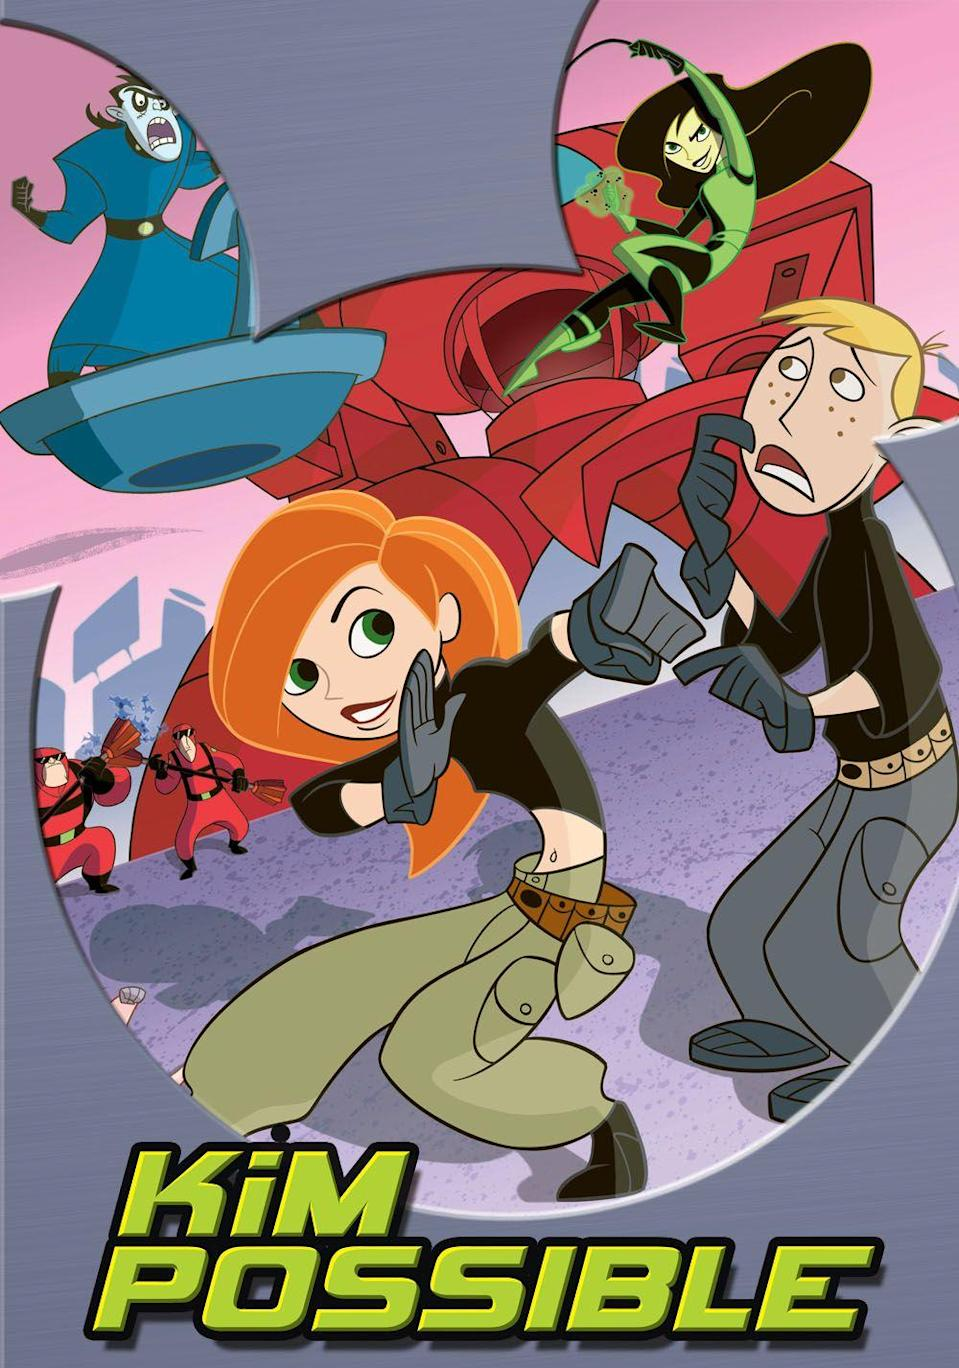 """<p>Since Disney Channel is a crucial part of the Disney family, the live action remake of <em>Kim Possible</em> just had to make this list. </p><p>Christy Carlson Romano and Will Friedle, who played Kim and Ron in the original animated series, helped pick out the new leads for the movie remake. And Sadie Stanley and Sean Giambrone made the cut. Stanley was previously on Nickelodeon's <em>Game Shakers</em>, while Giambrone is currently starring in ABC's <em>The Goldbergs</em>.</p><p><a class=""""link rapid-noclick-resp"""" href=""""https://www.amazon.com/The-New-Ron/dp/B073RRP1VG/?tag=syn-yahoo-20&ascsubtag=%5Bartid%7C10065.g.2936%5Bsrc%7Cyahoo-us"""" rel=""""nofollow noopener"""" target=""""_blank"""" data-ylk=""""slk:Watch the Original"""">Watch the Original</a></p>"""